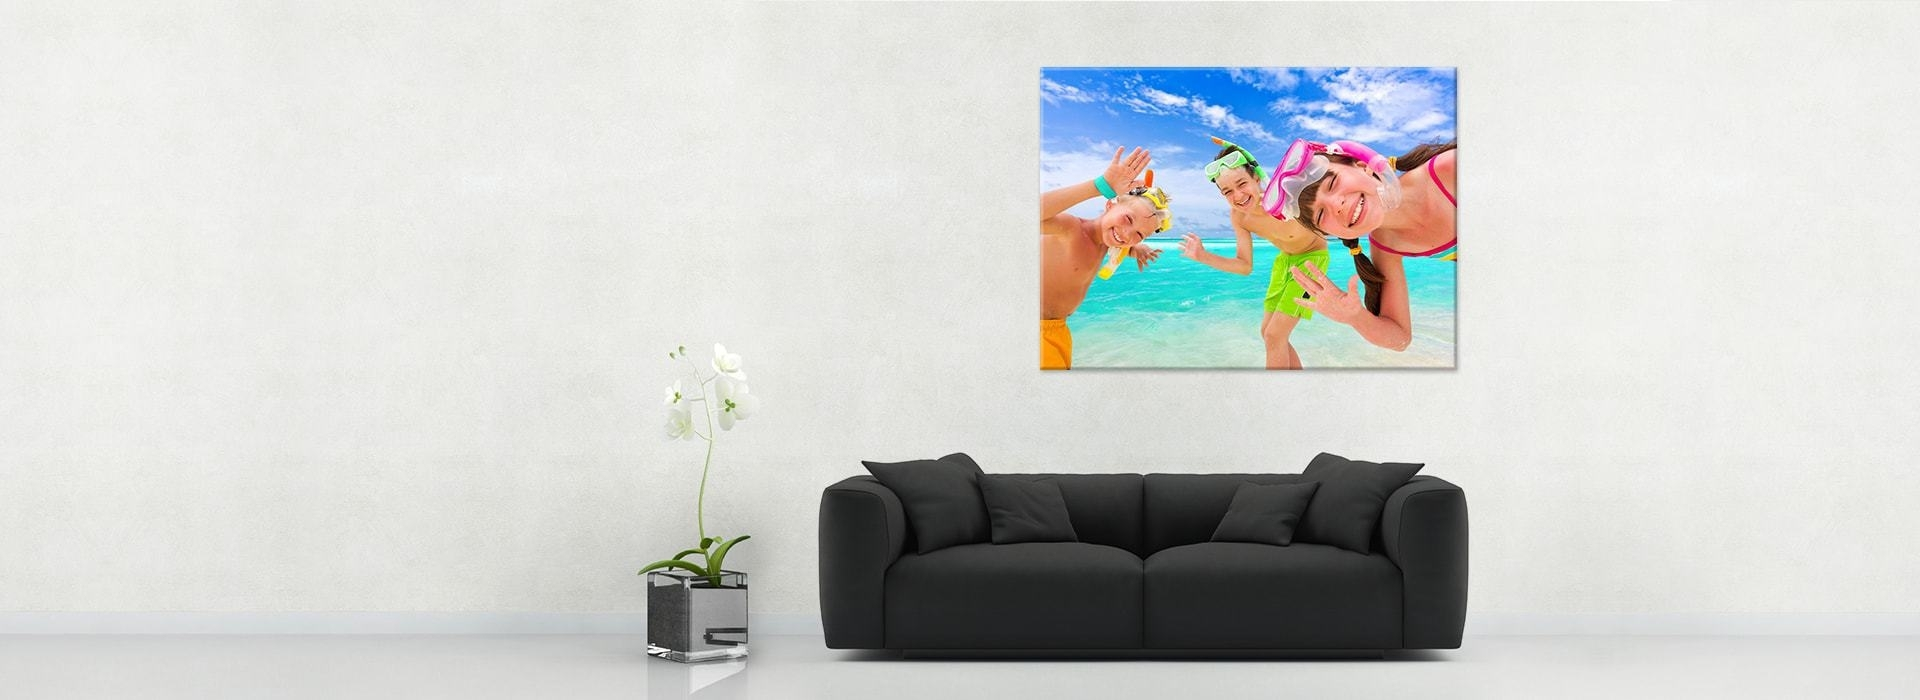 Canvas Prints | Canvas Factory Pertaining To Most Up To Date Canvas Wall Art Of Perth (View 7 of 15)